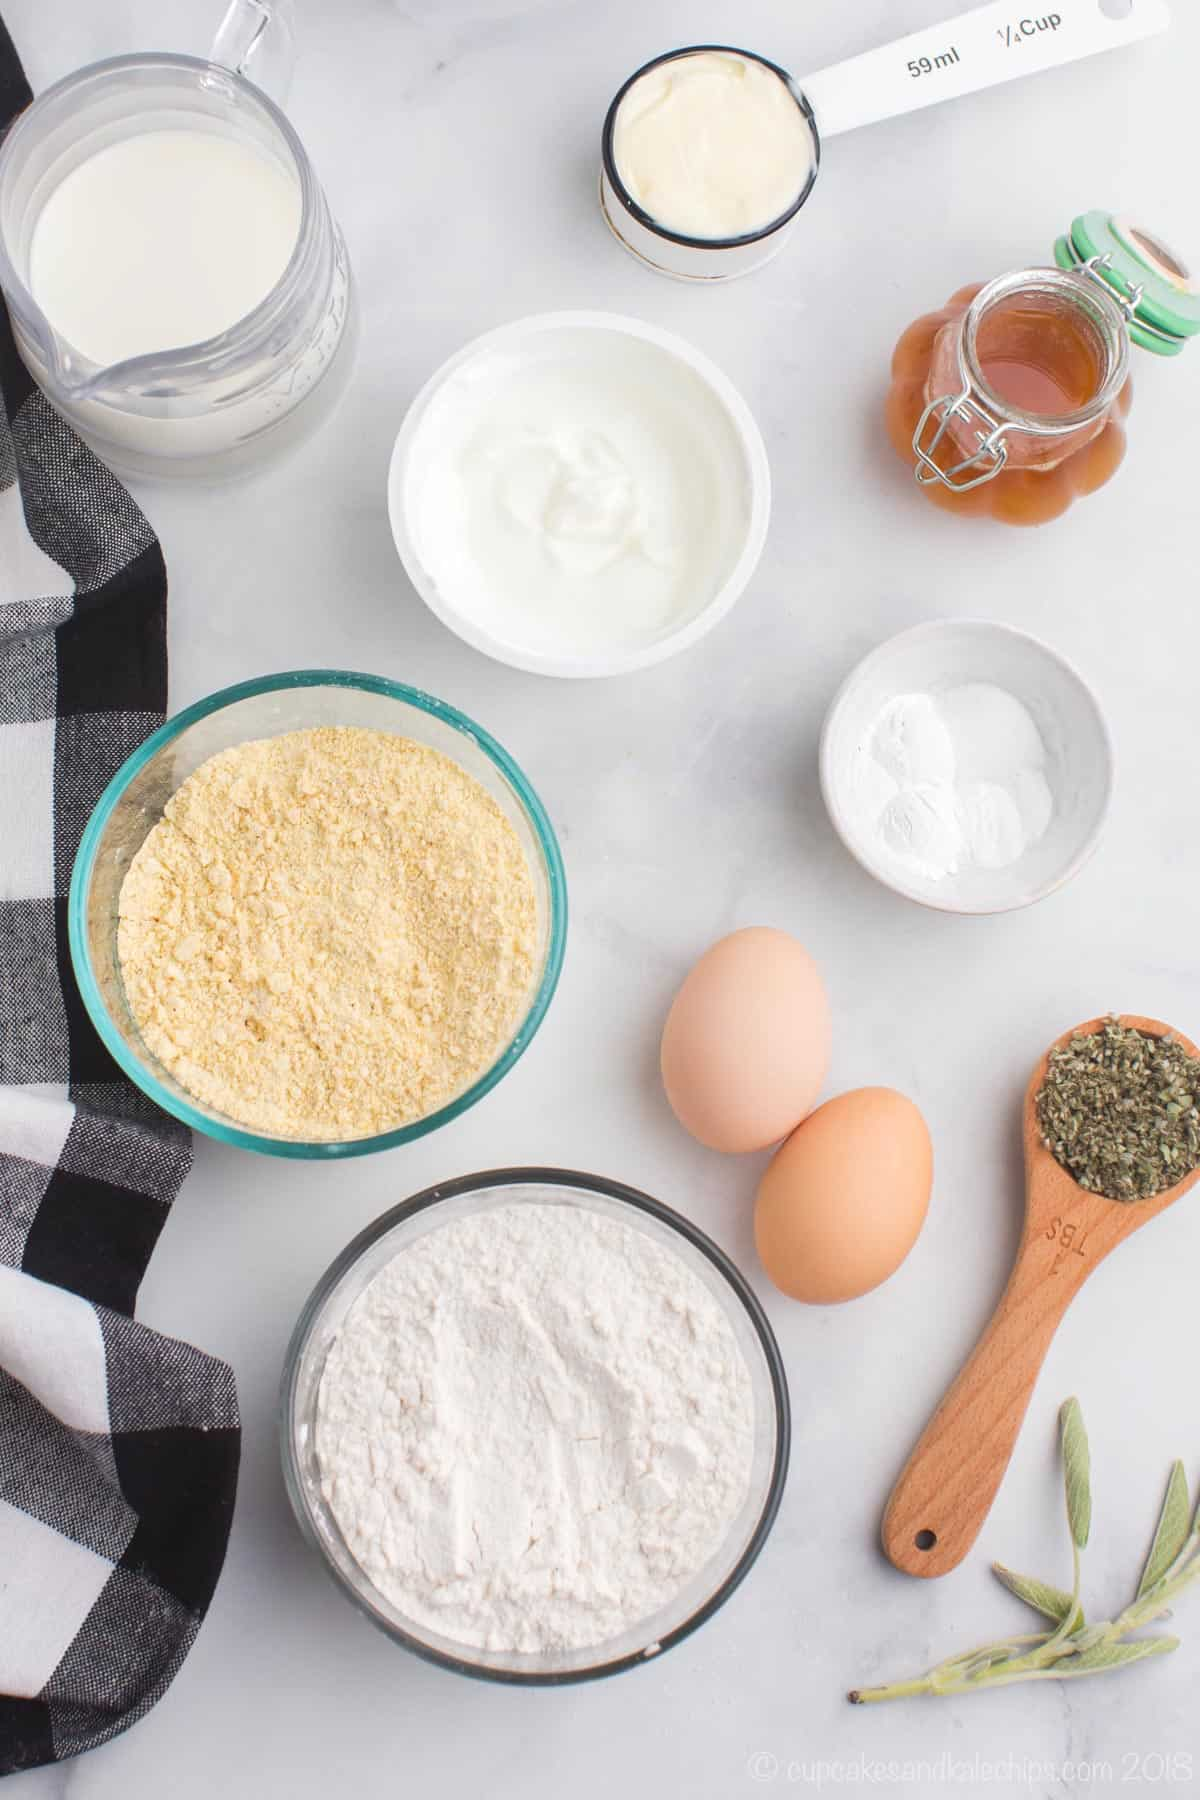 bowls of gluten free flour, cornmeal, salt, baking powder, and baking soda, a measure spoon with fresh sage, a jar of honey, two eggs, a container of yogurt, milk in a pitcher and butter in a measuring cup